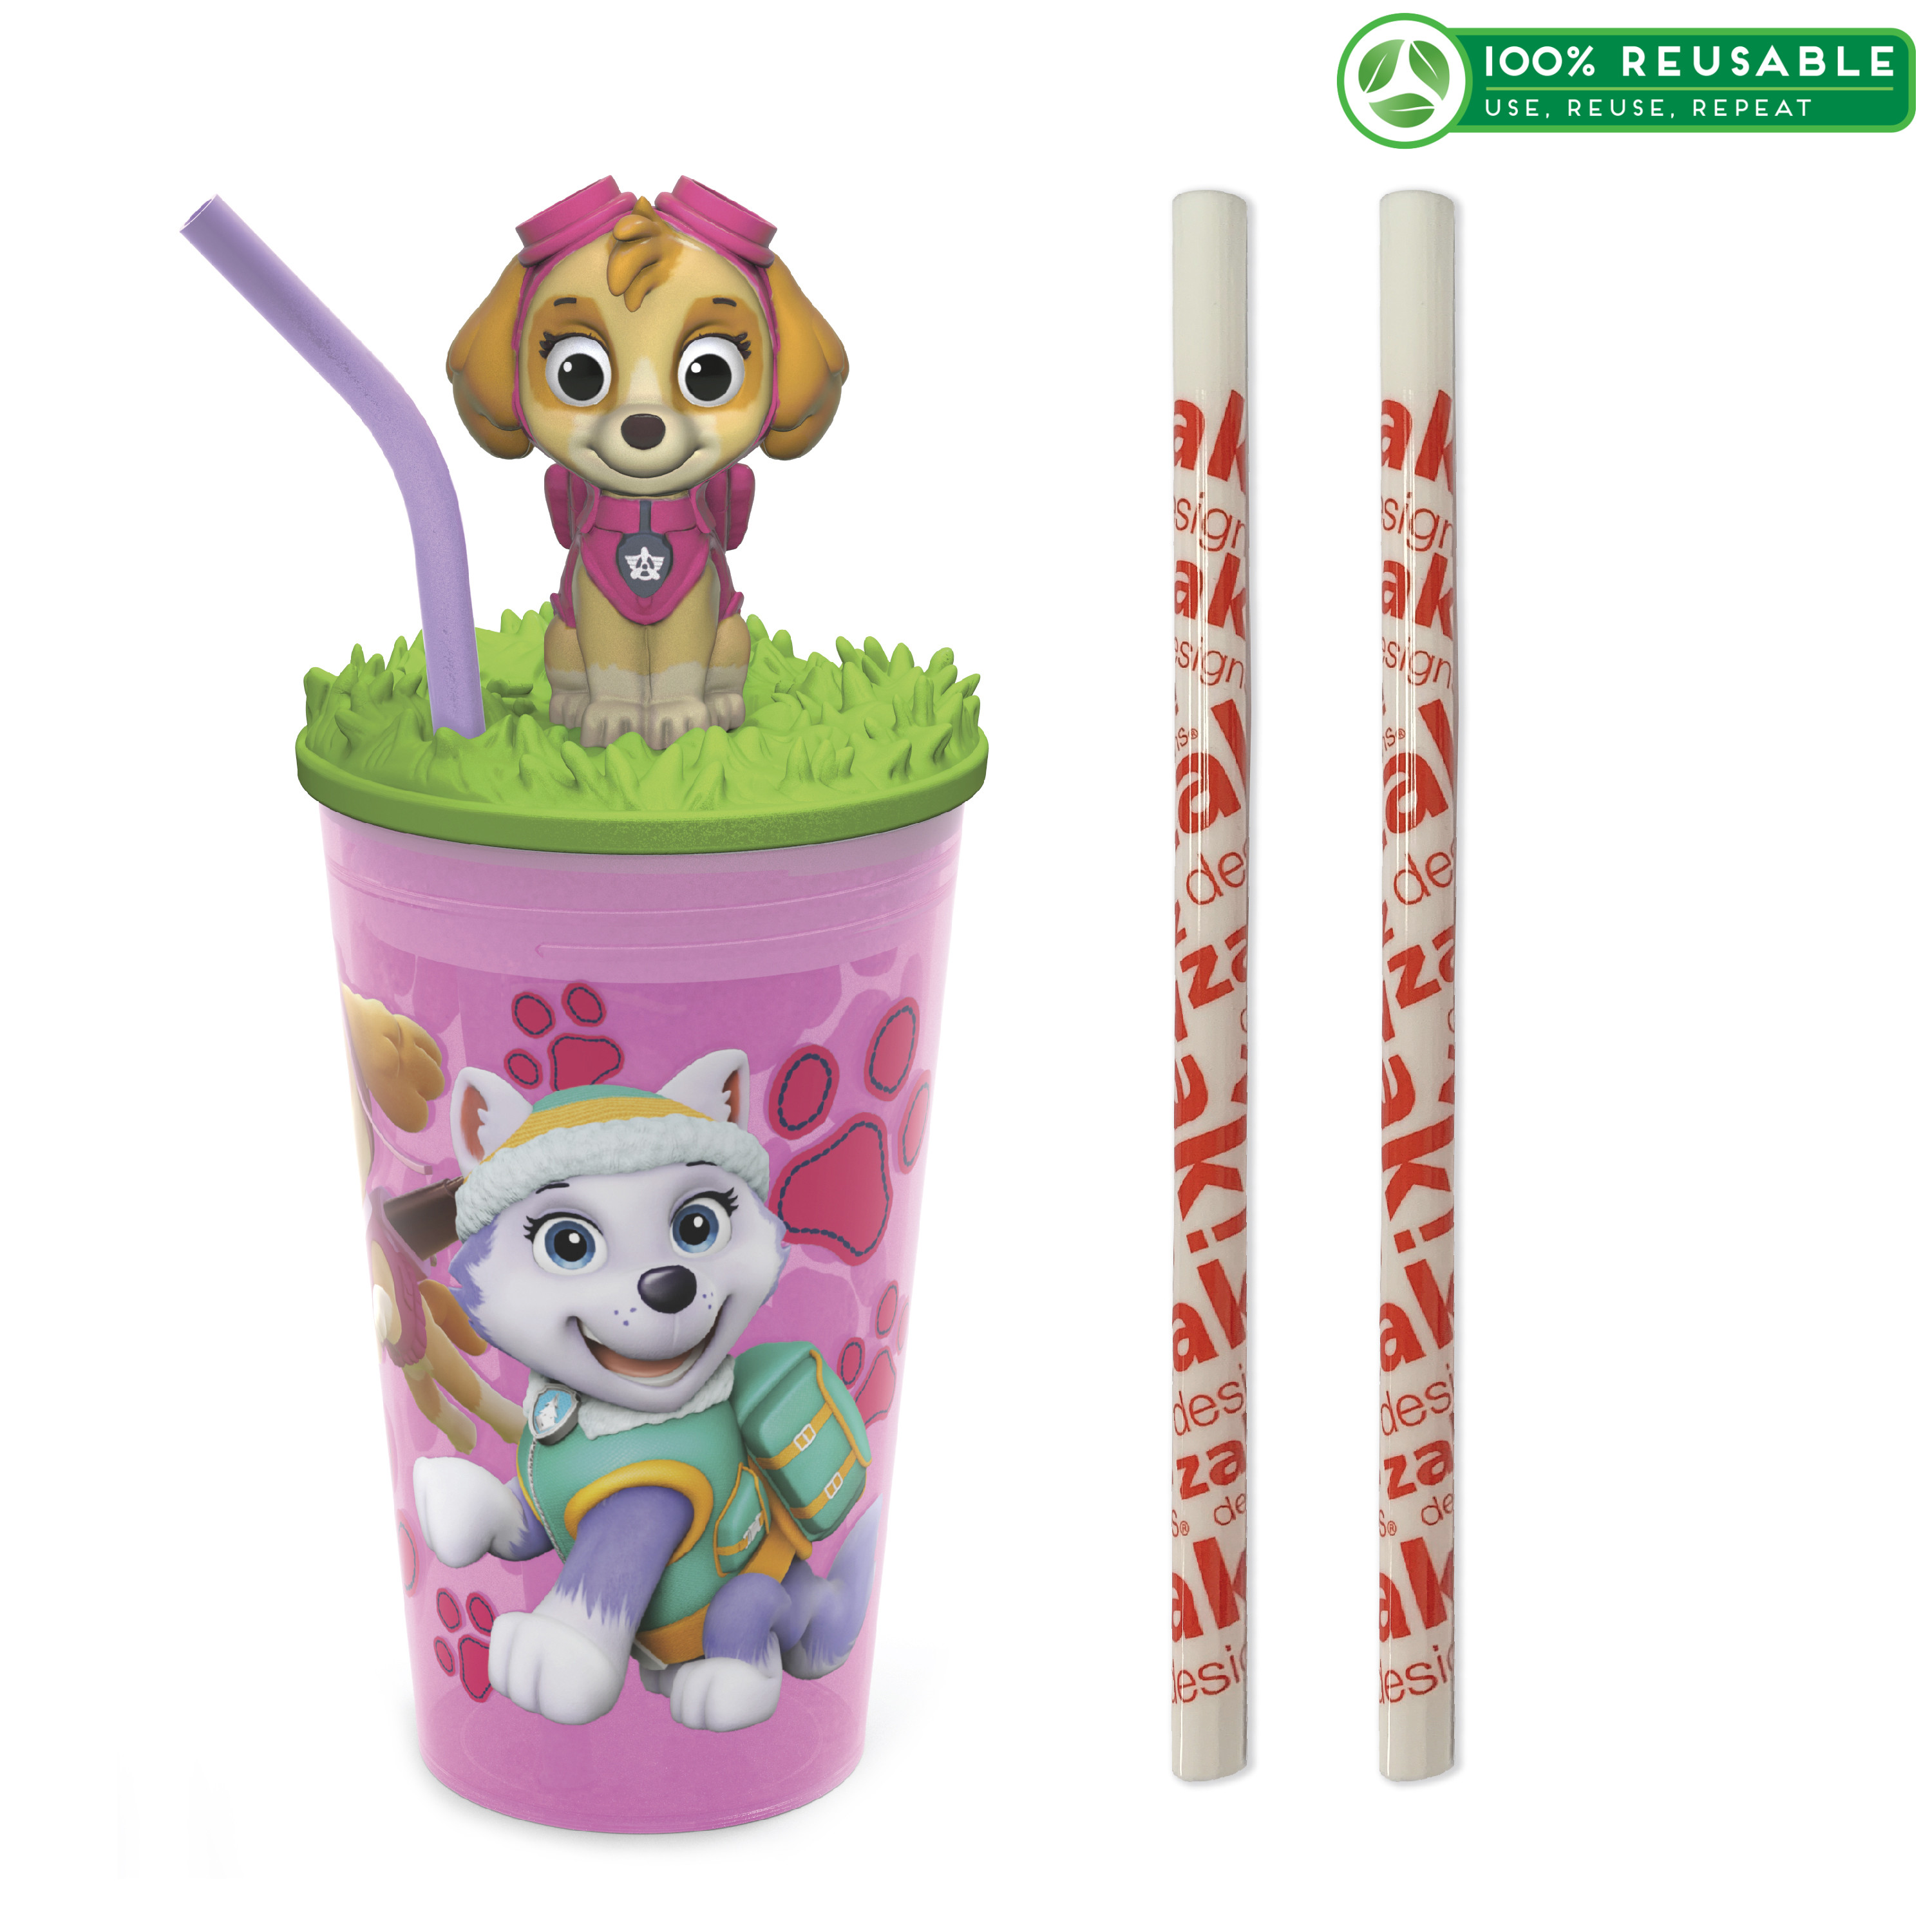 Paw Patrol 15 ounce Kid's Tumbler, Skye, 3-piece set slideshow image 1